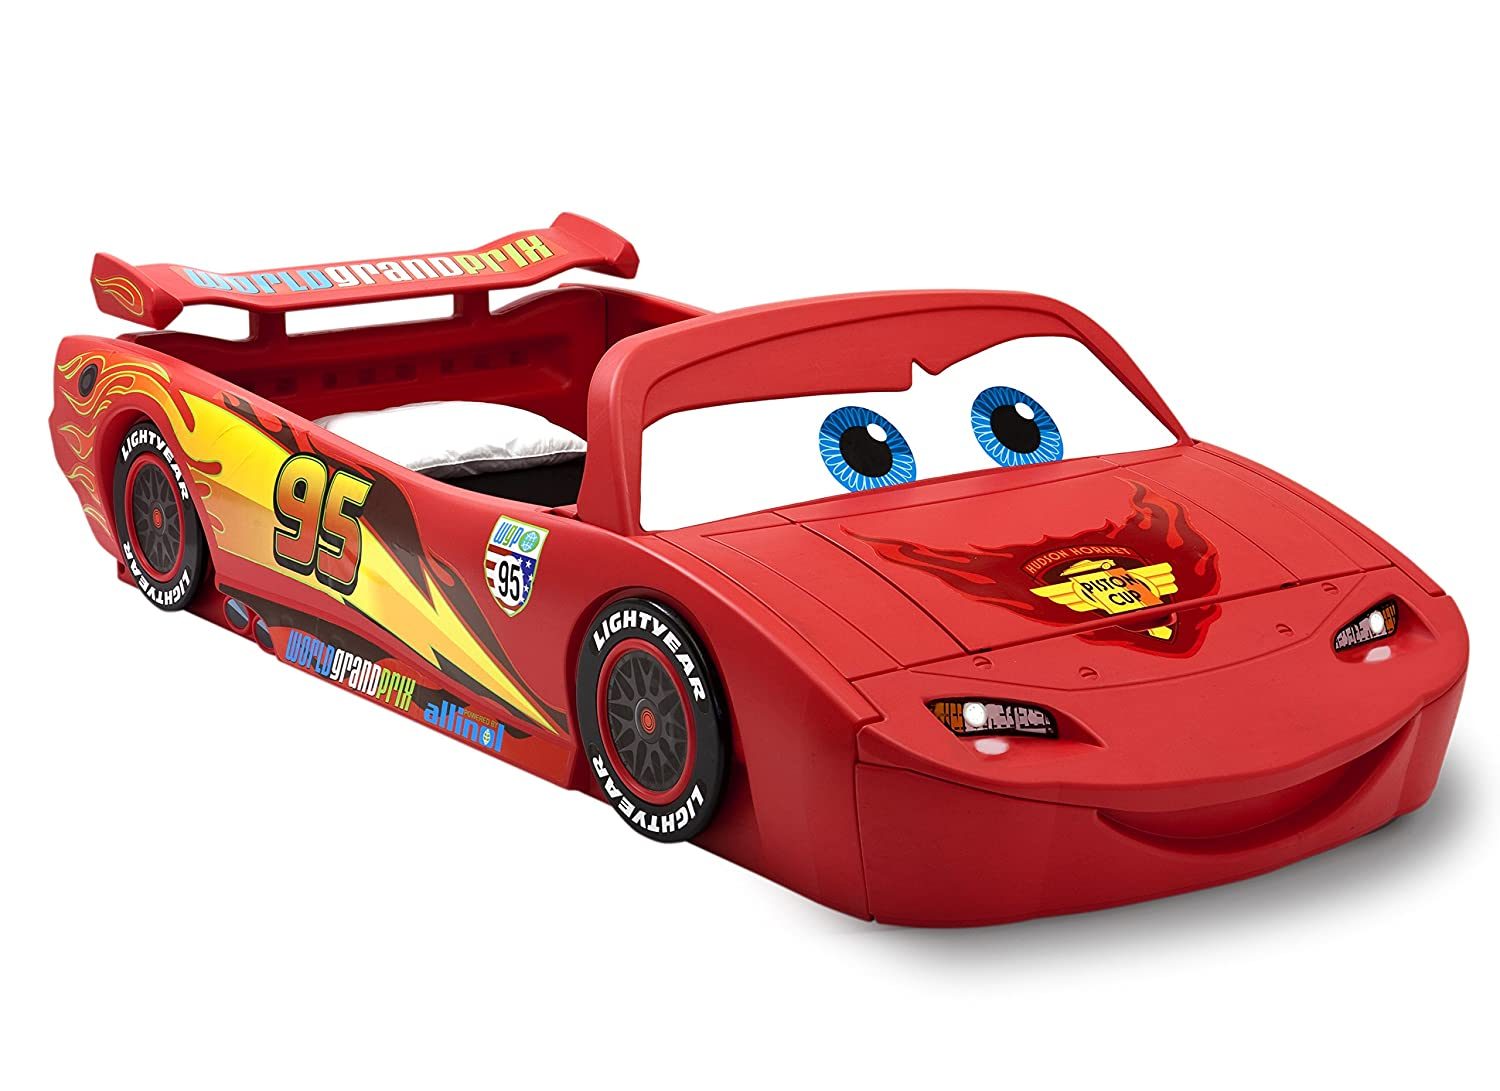 Amazon.com : Delta Children Cars Lightning Mcqueen Toddler-To-Twin Bed with Lights and Toy Box, Disney/Pixar Cars